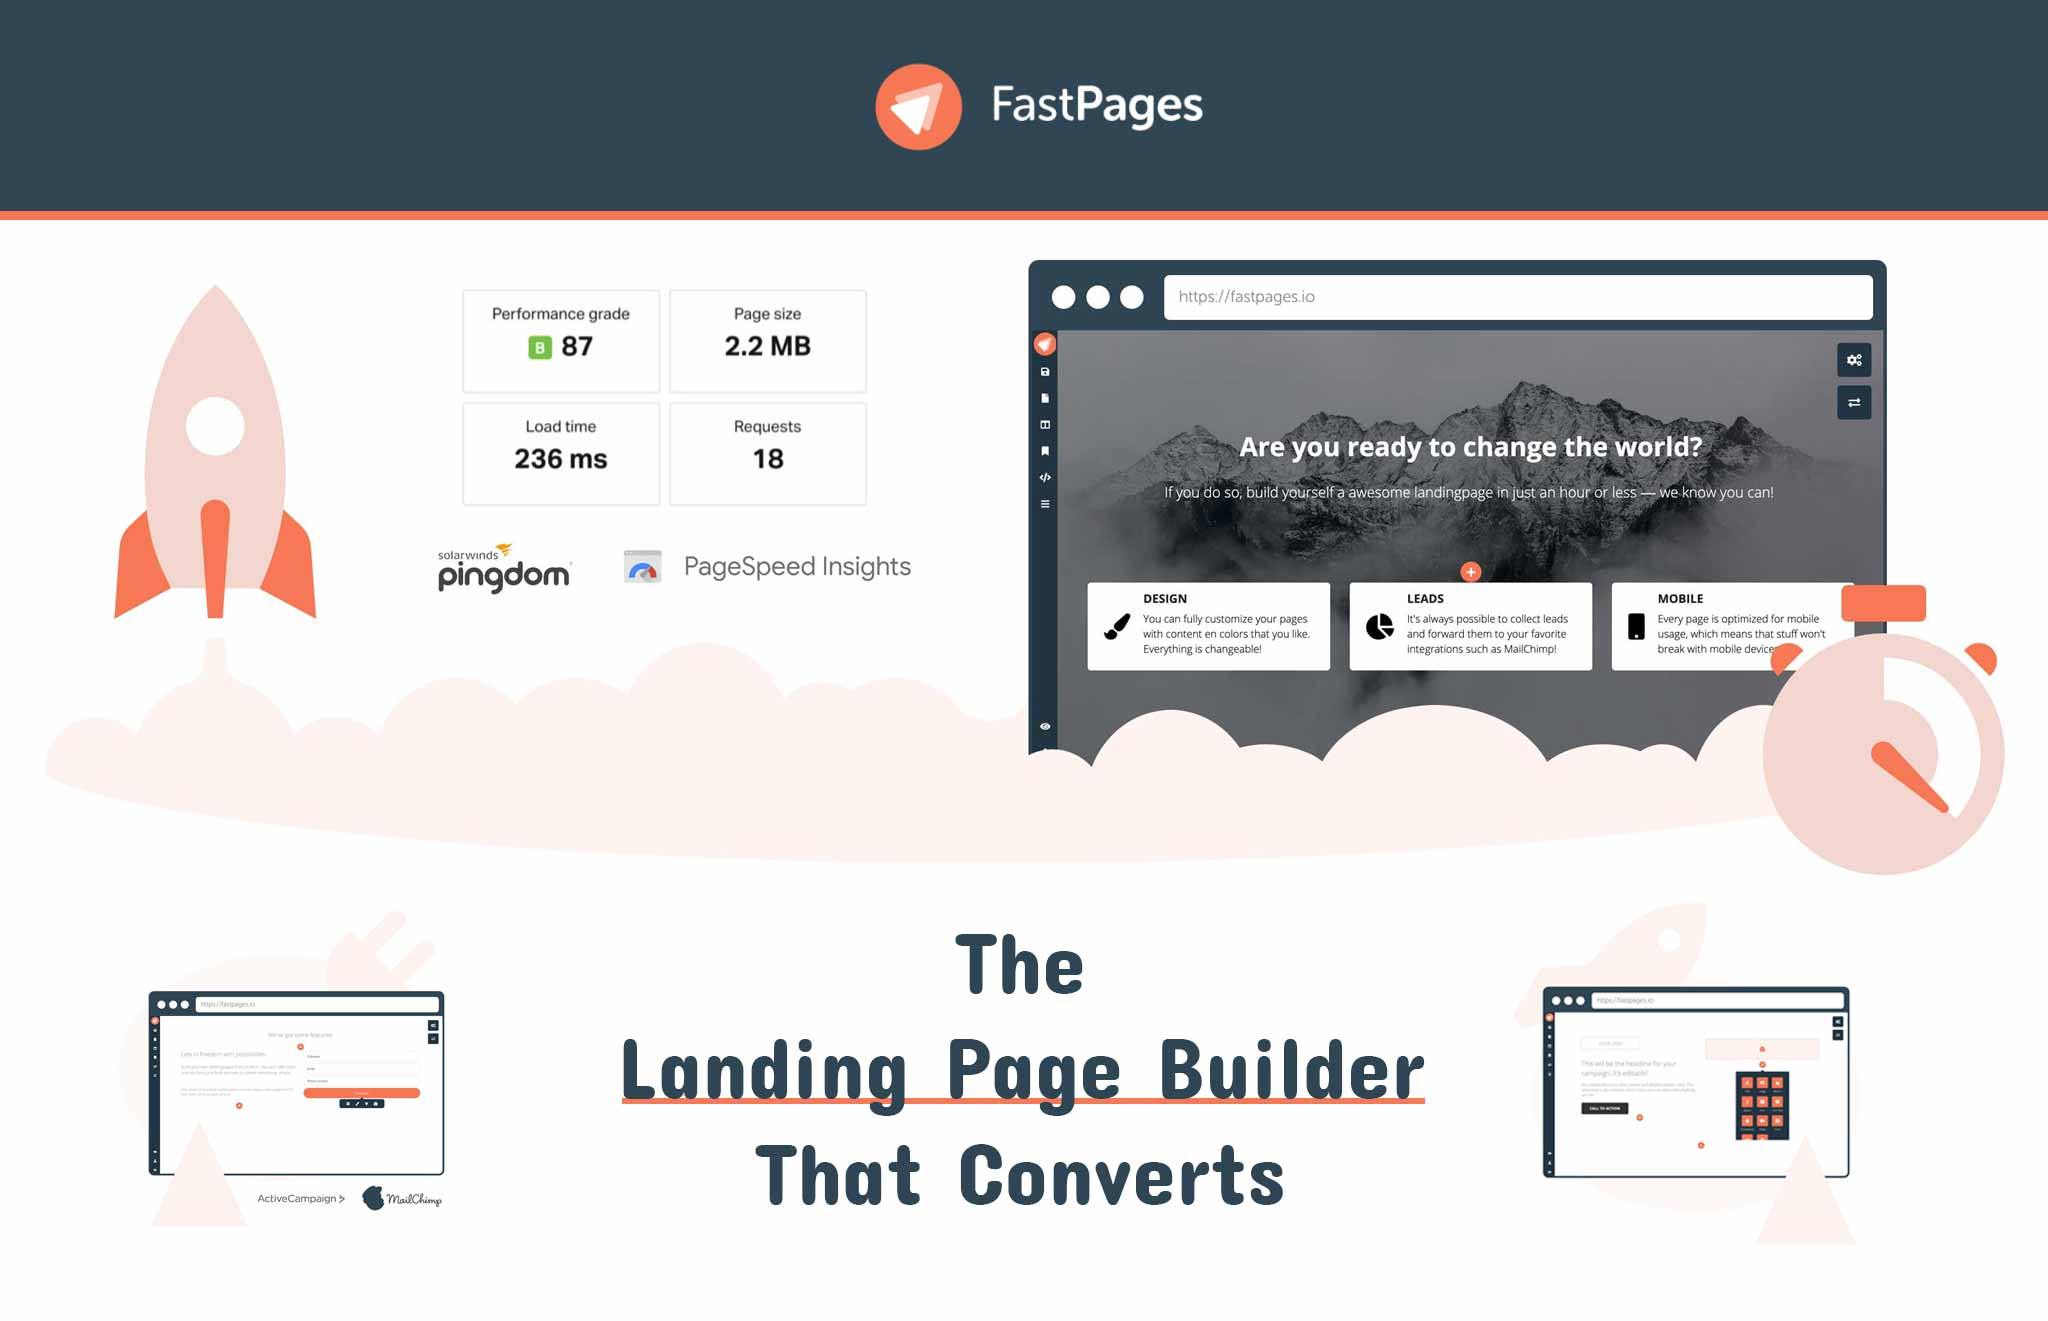 Fastpages - The landing page builder that converts